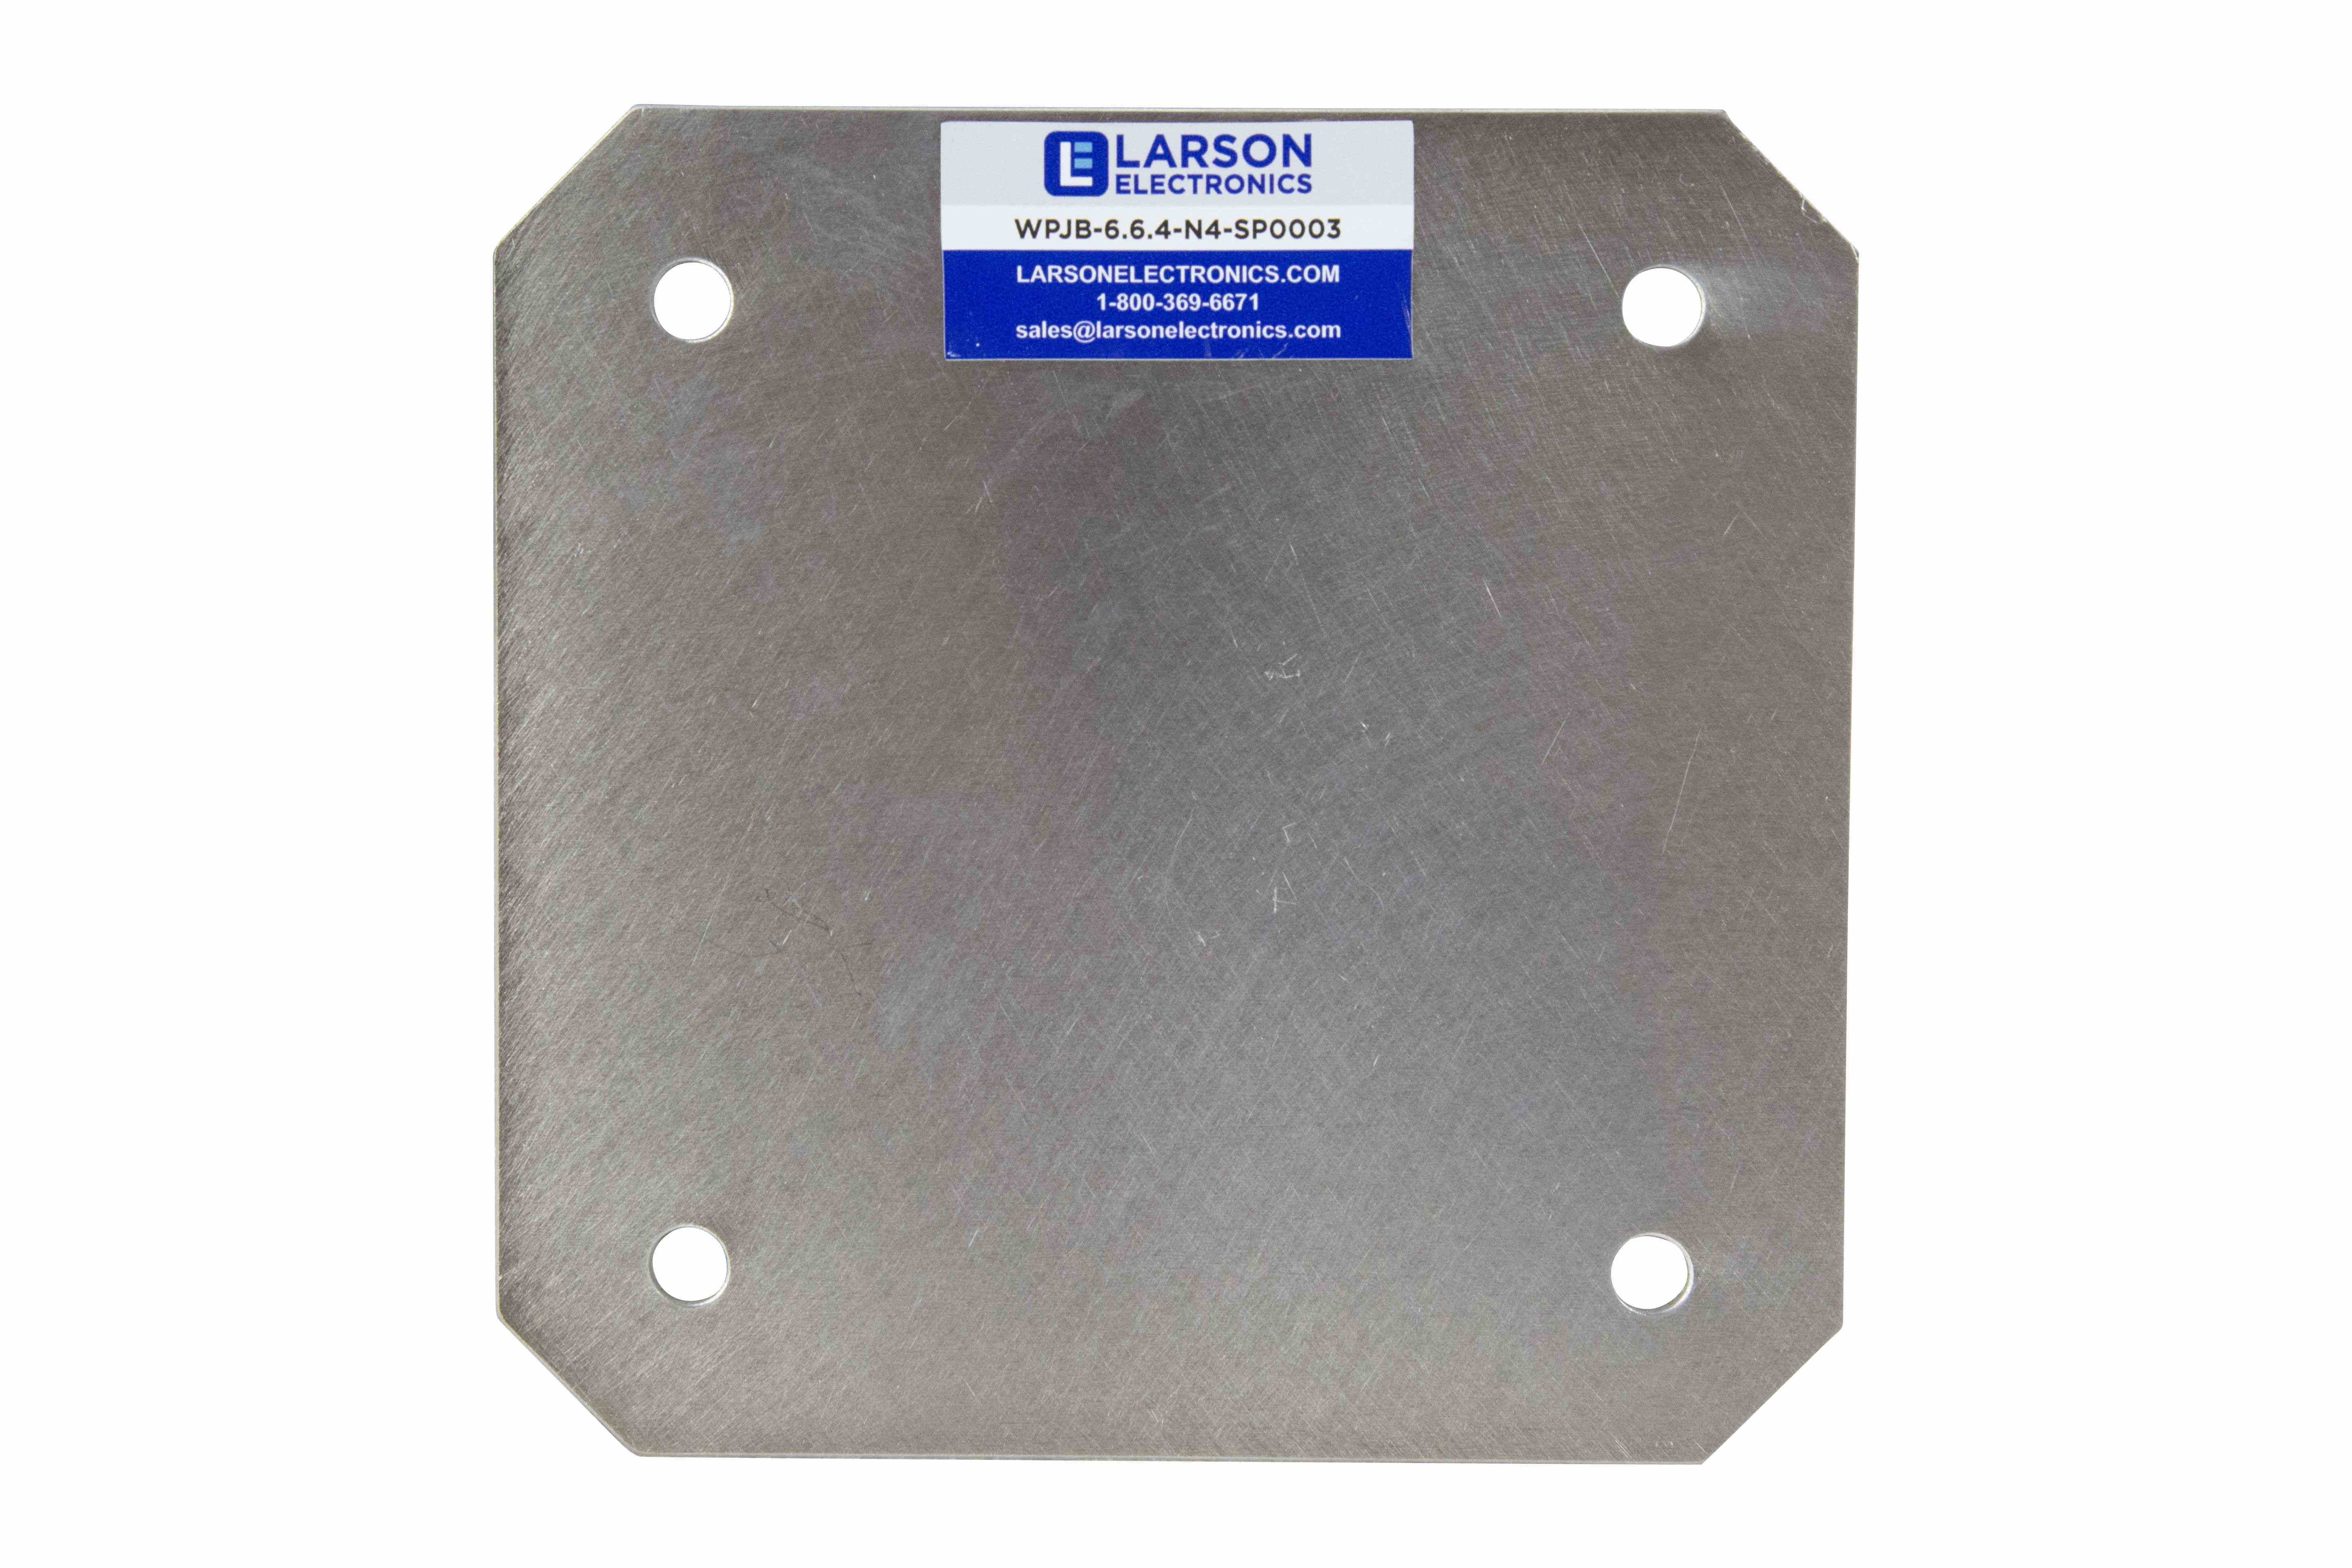 Aluminum Back Plate for EPL-AEB-16.16 Series Explosion Proof Enclosure, Internal Bolt-In Mounting Pan